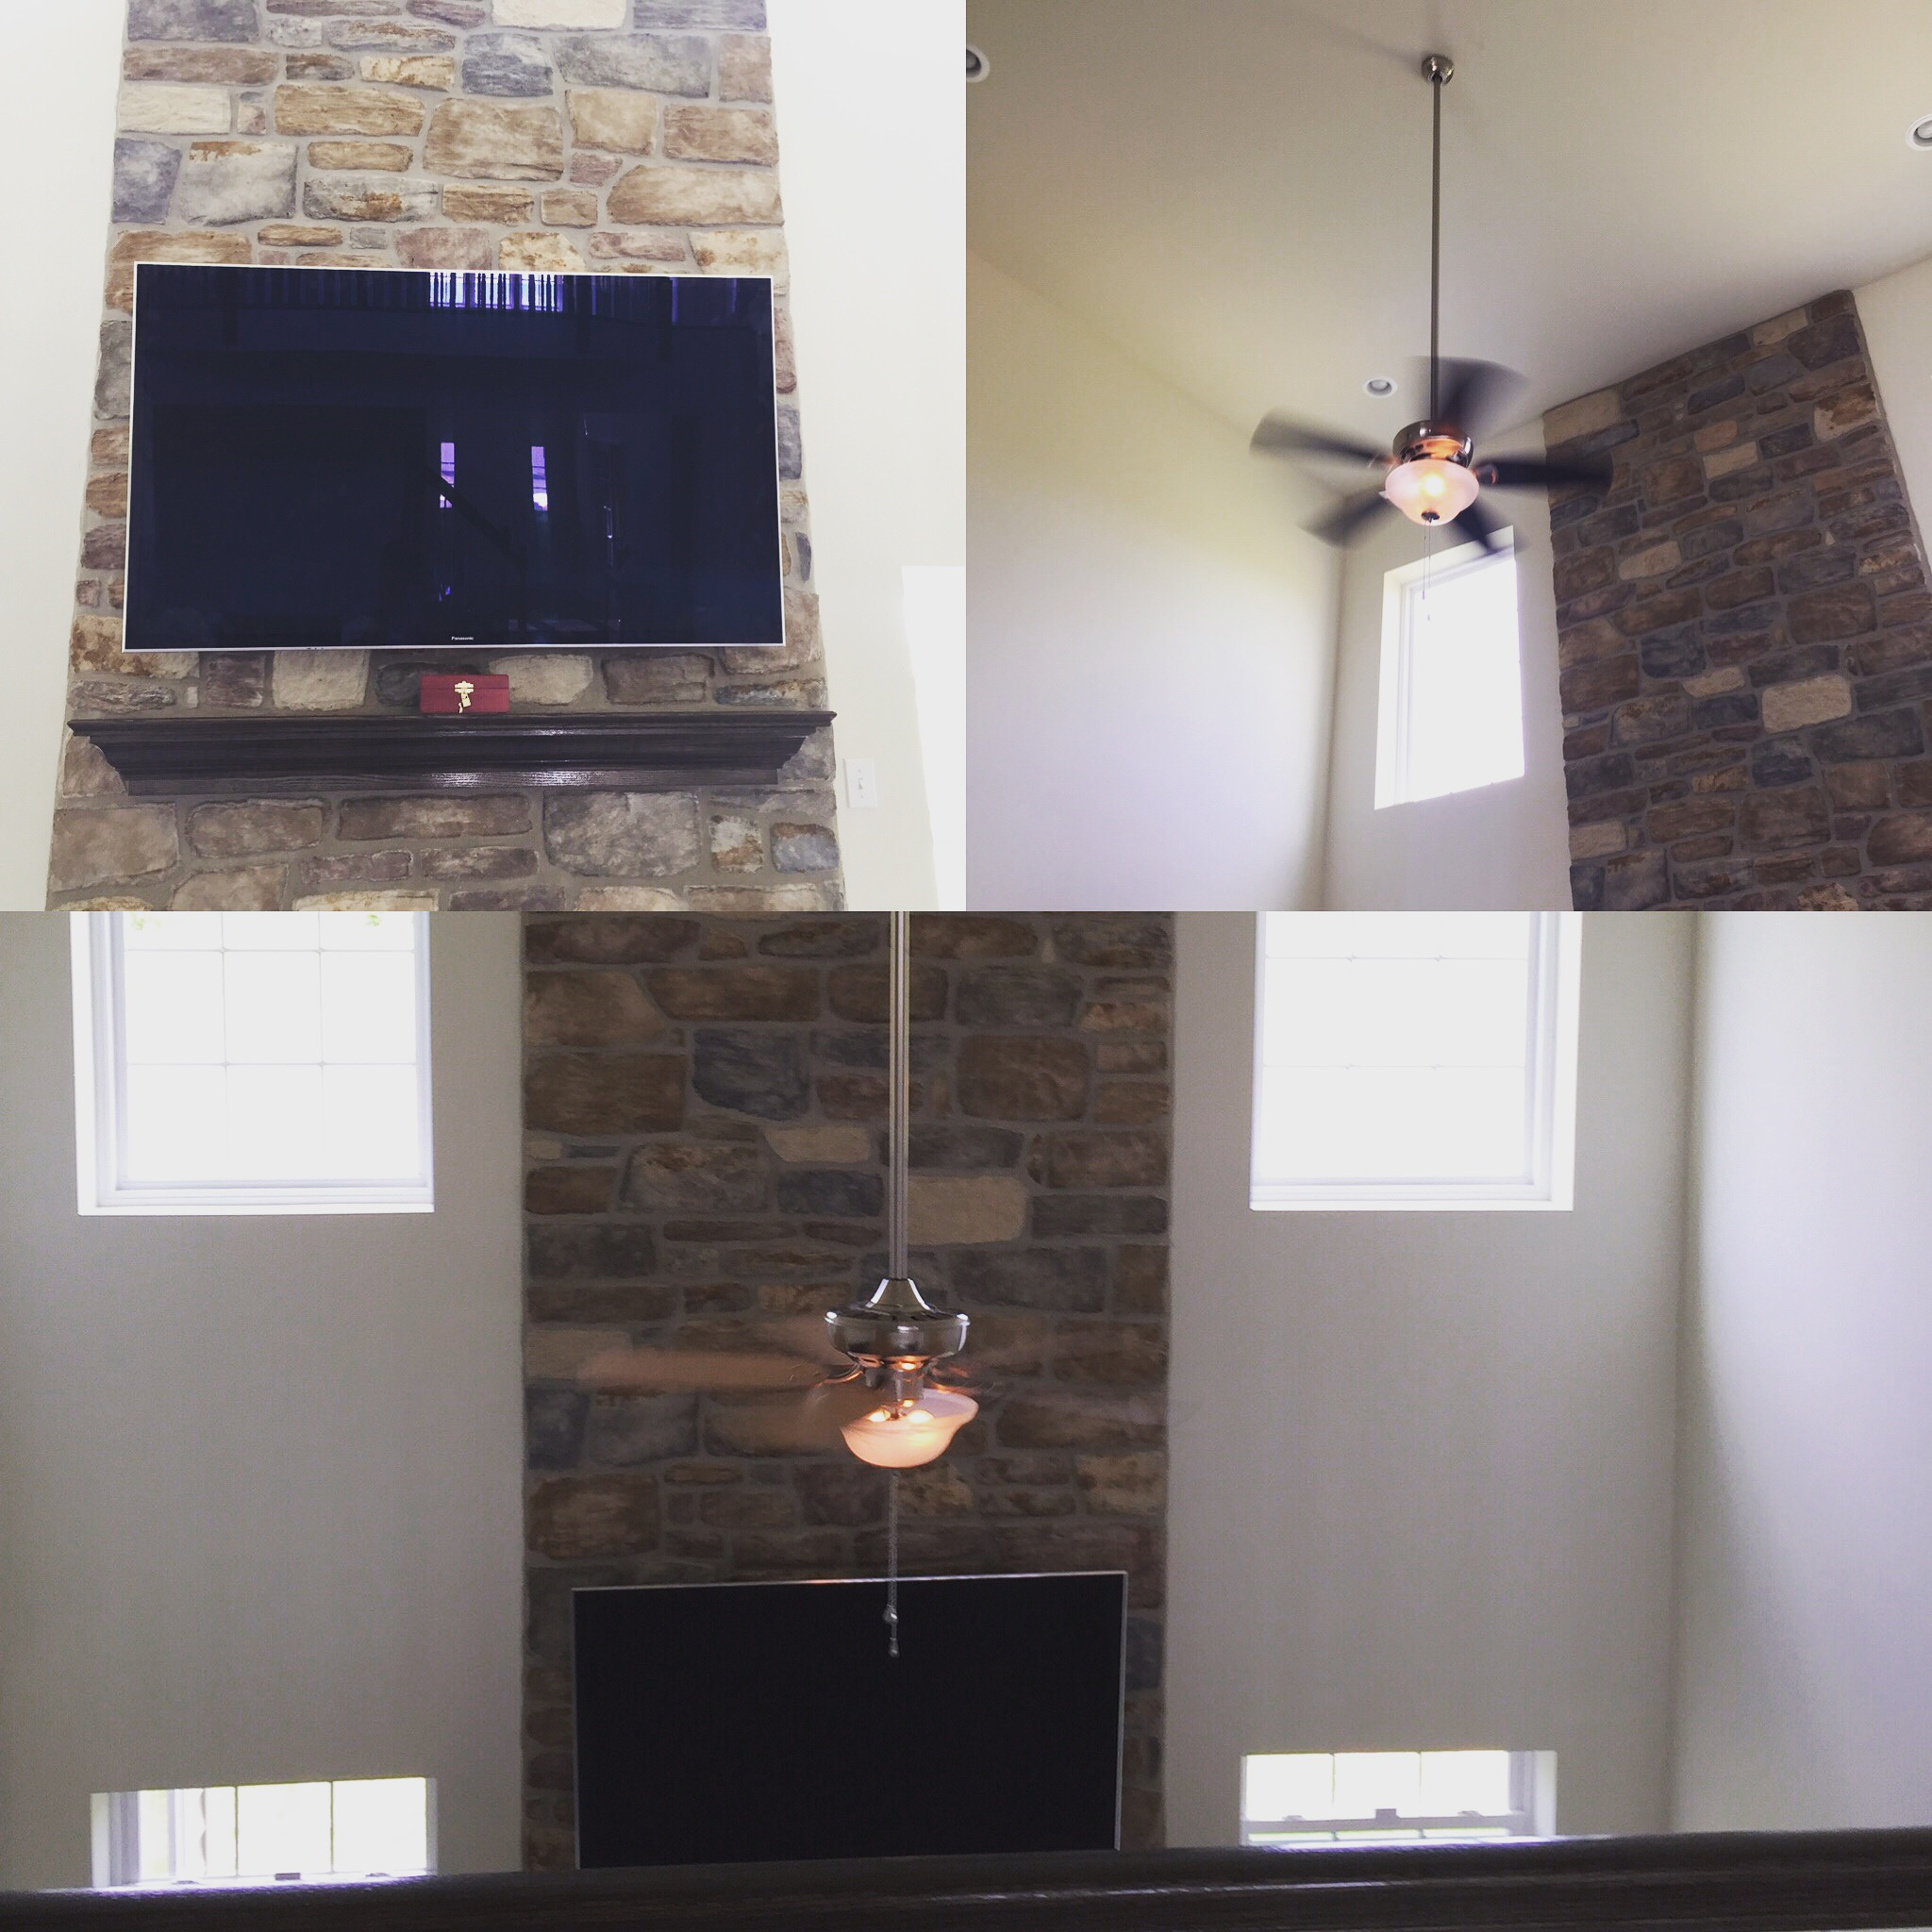 tv mounting and ceiling fan